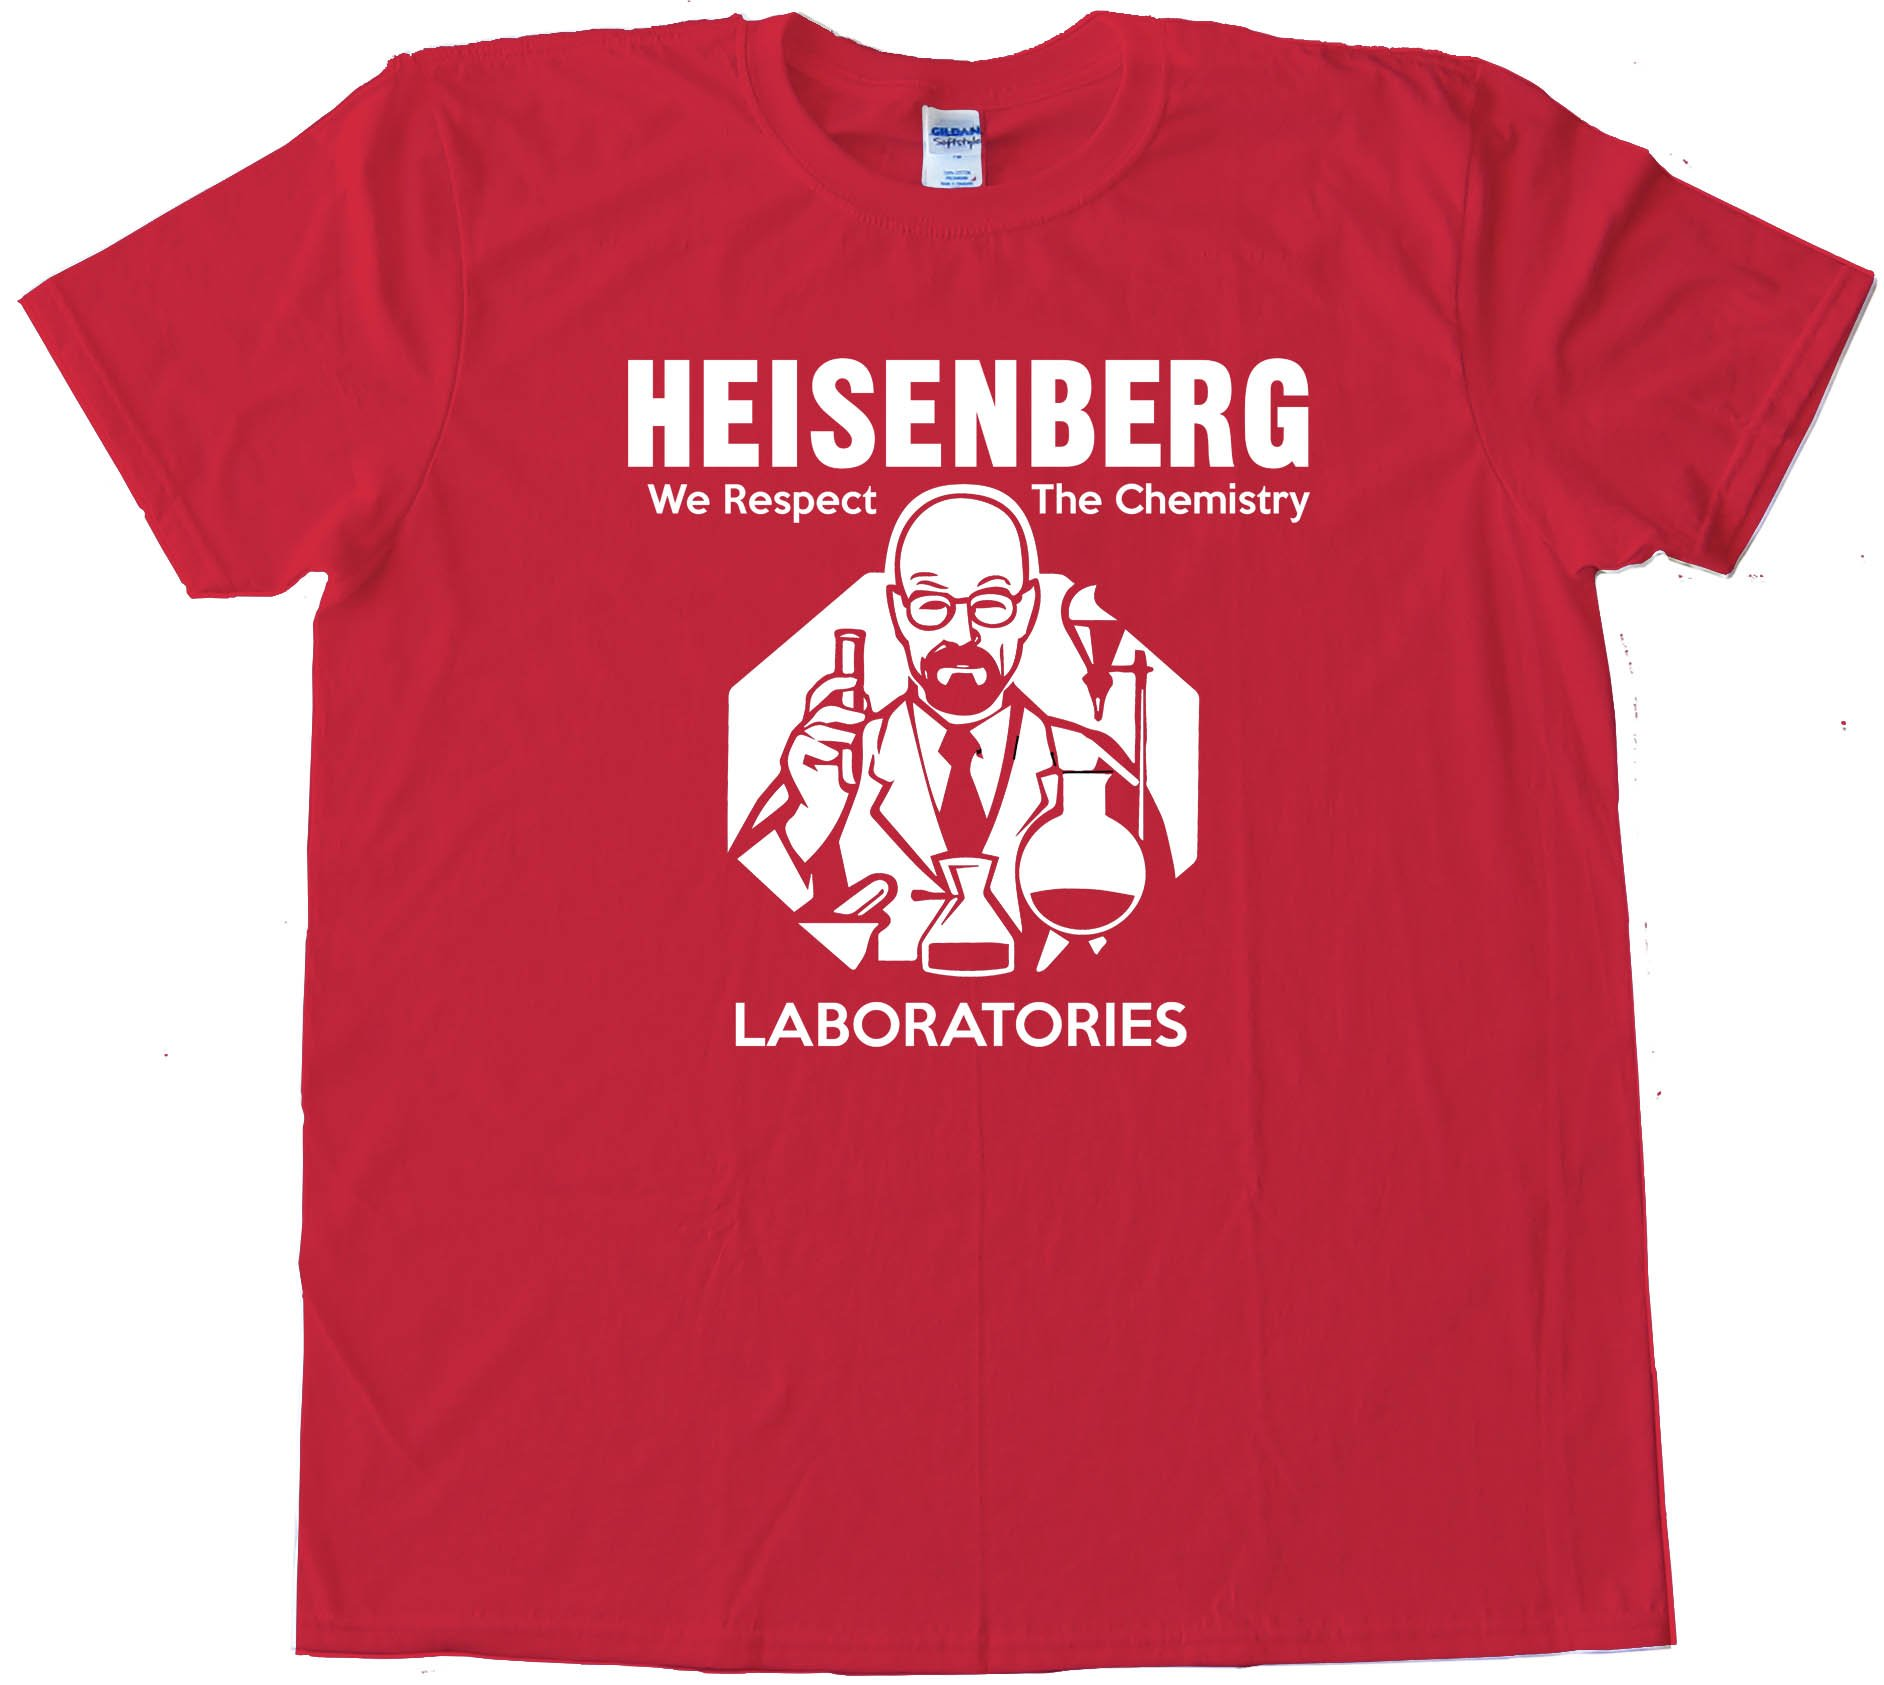 Heisenberg Laboratories - Tee Shirt